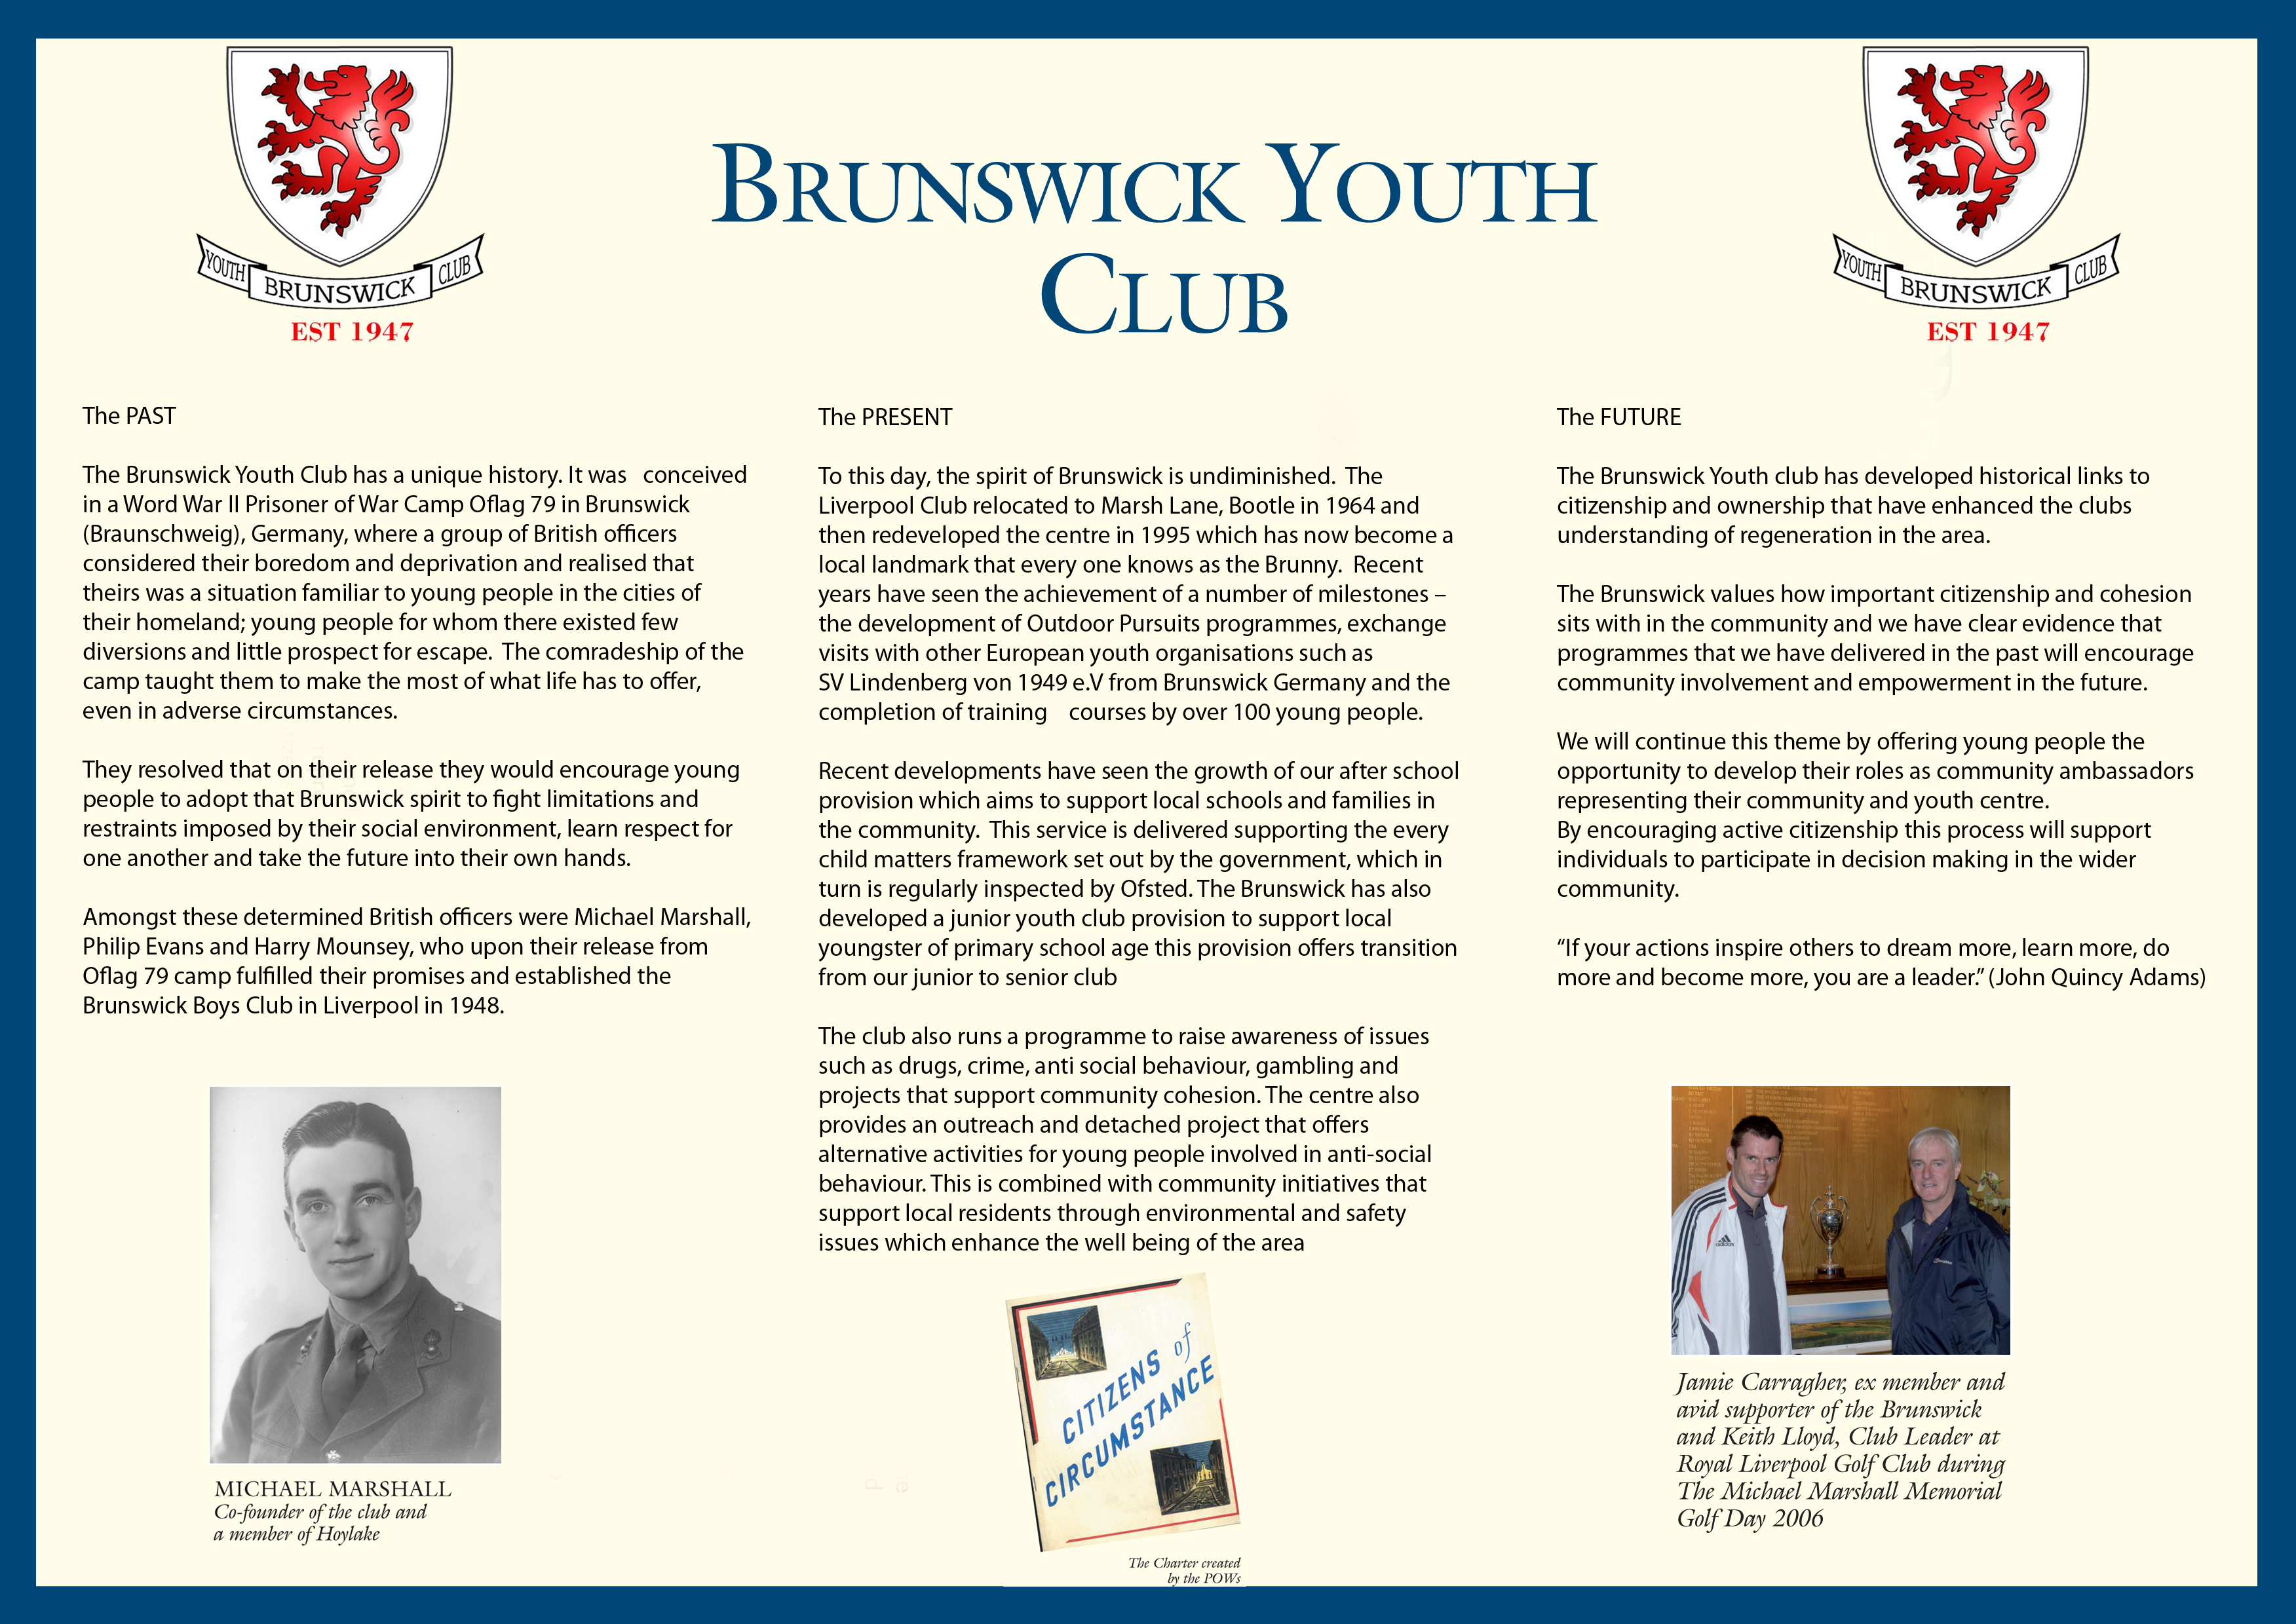 The history of Brunswick Youth and Community Centre is outlined in this poster.